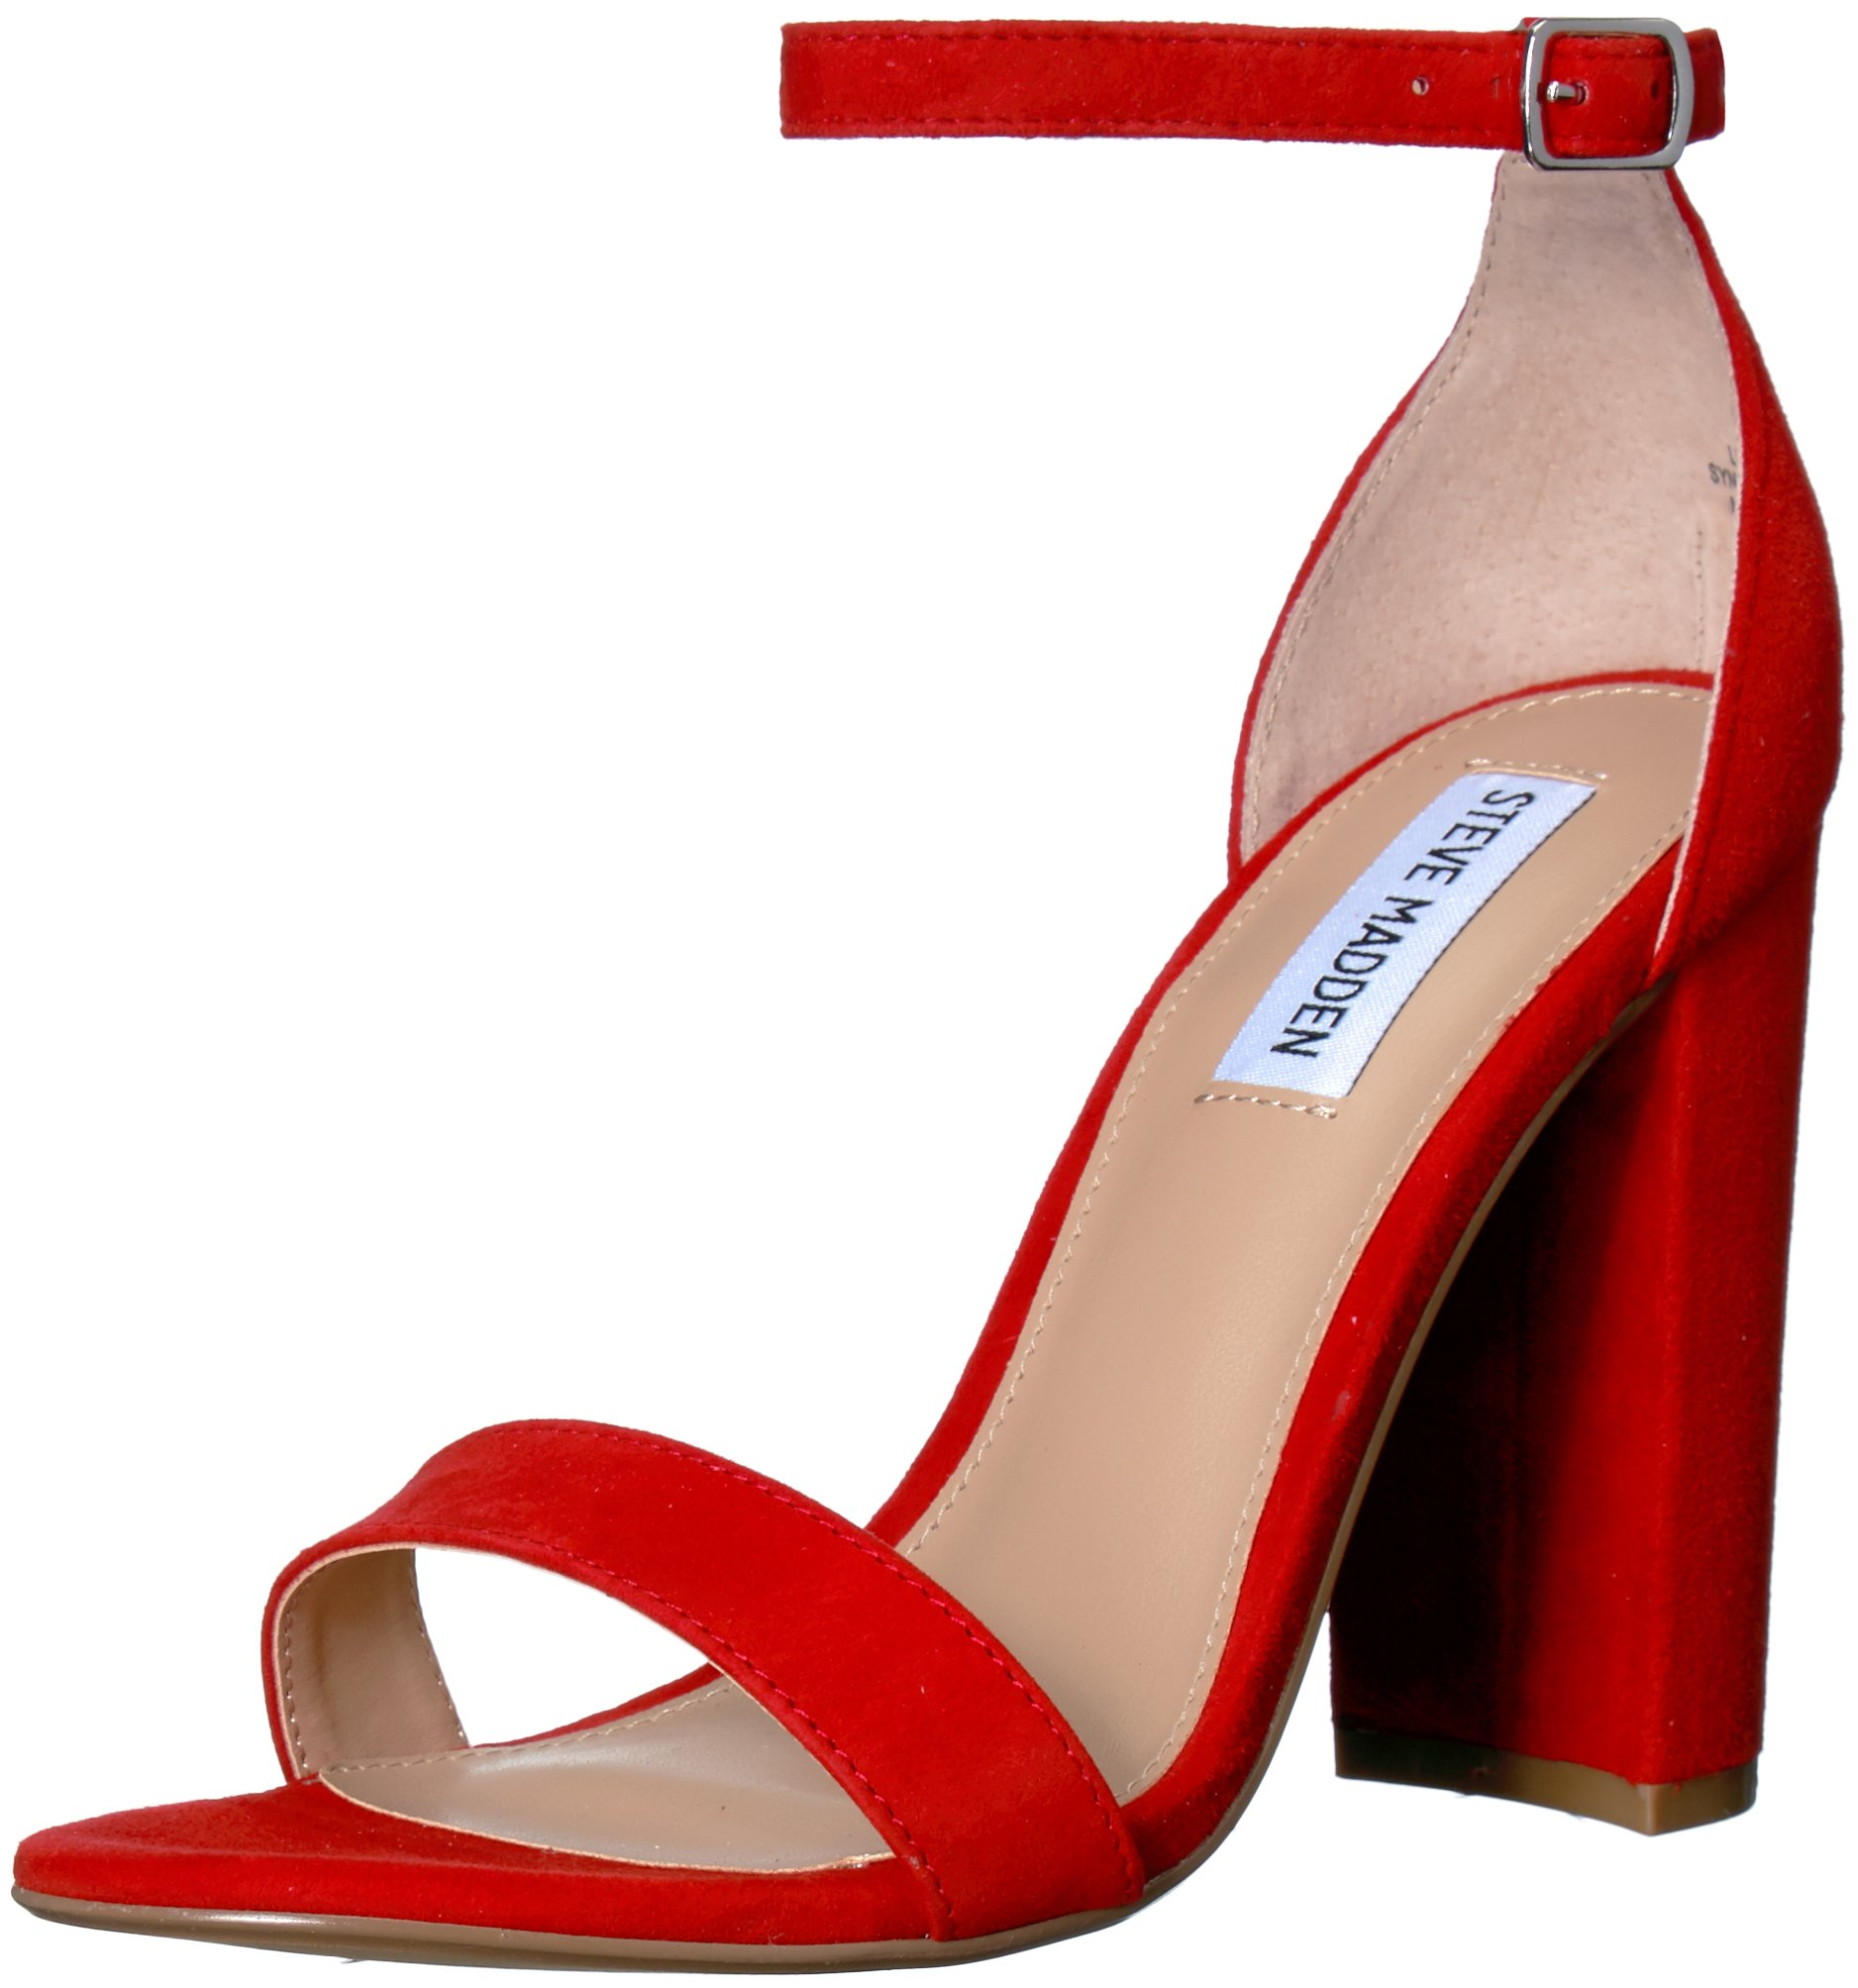 Steve Madden Women's Carrson Heeled Sandal, red Suede, 10 M US by Steve Madden